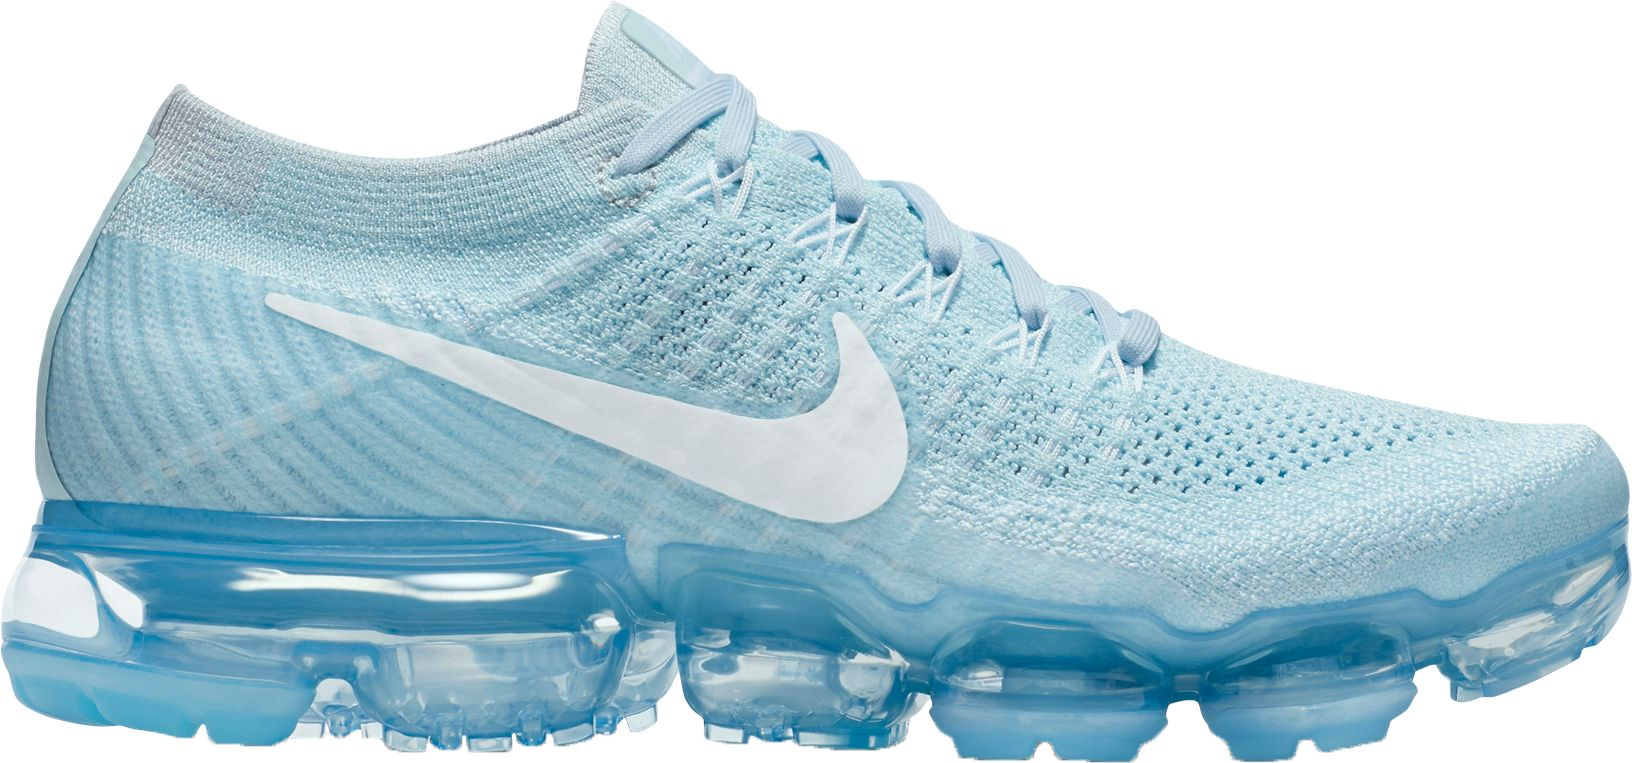 Cheap Nike News Vapormax News Cheap Nike, Inc.